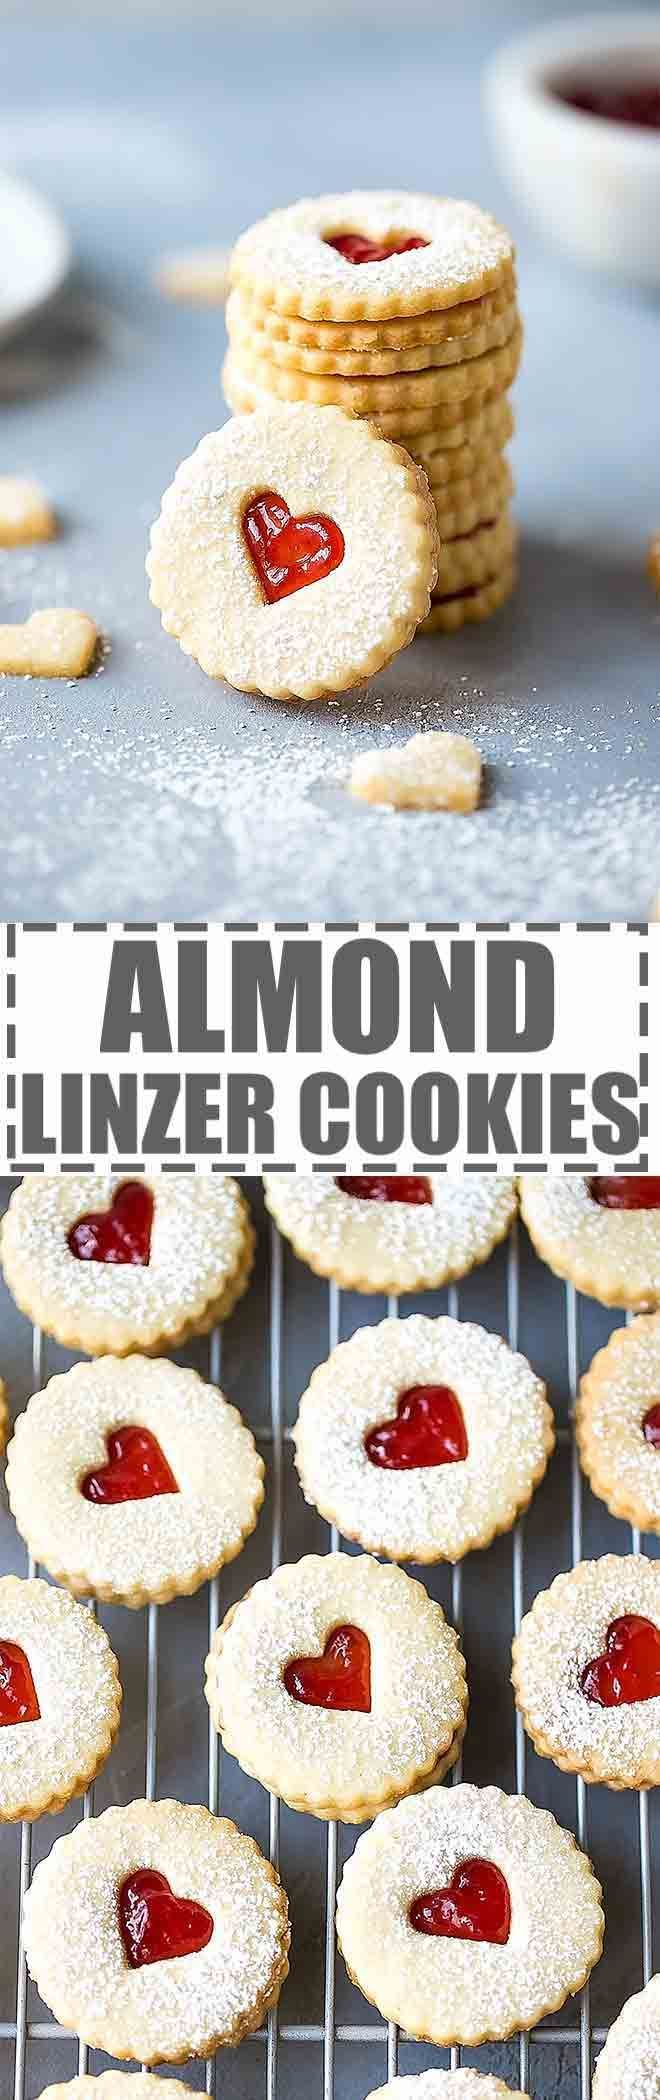 Easy Almond Linzer Cookies Recipe - crunchy and flavorful, filled with strawberry jam and dusted with powdered sugar. Great for Valentine's Day. via @cookinglsl